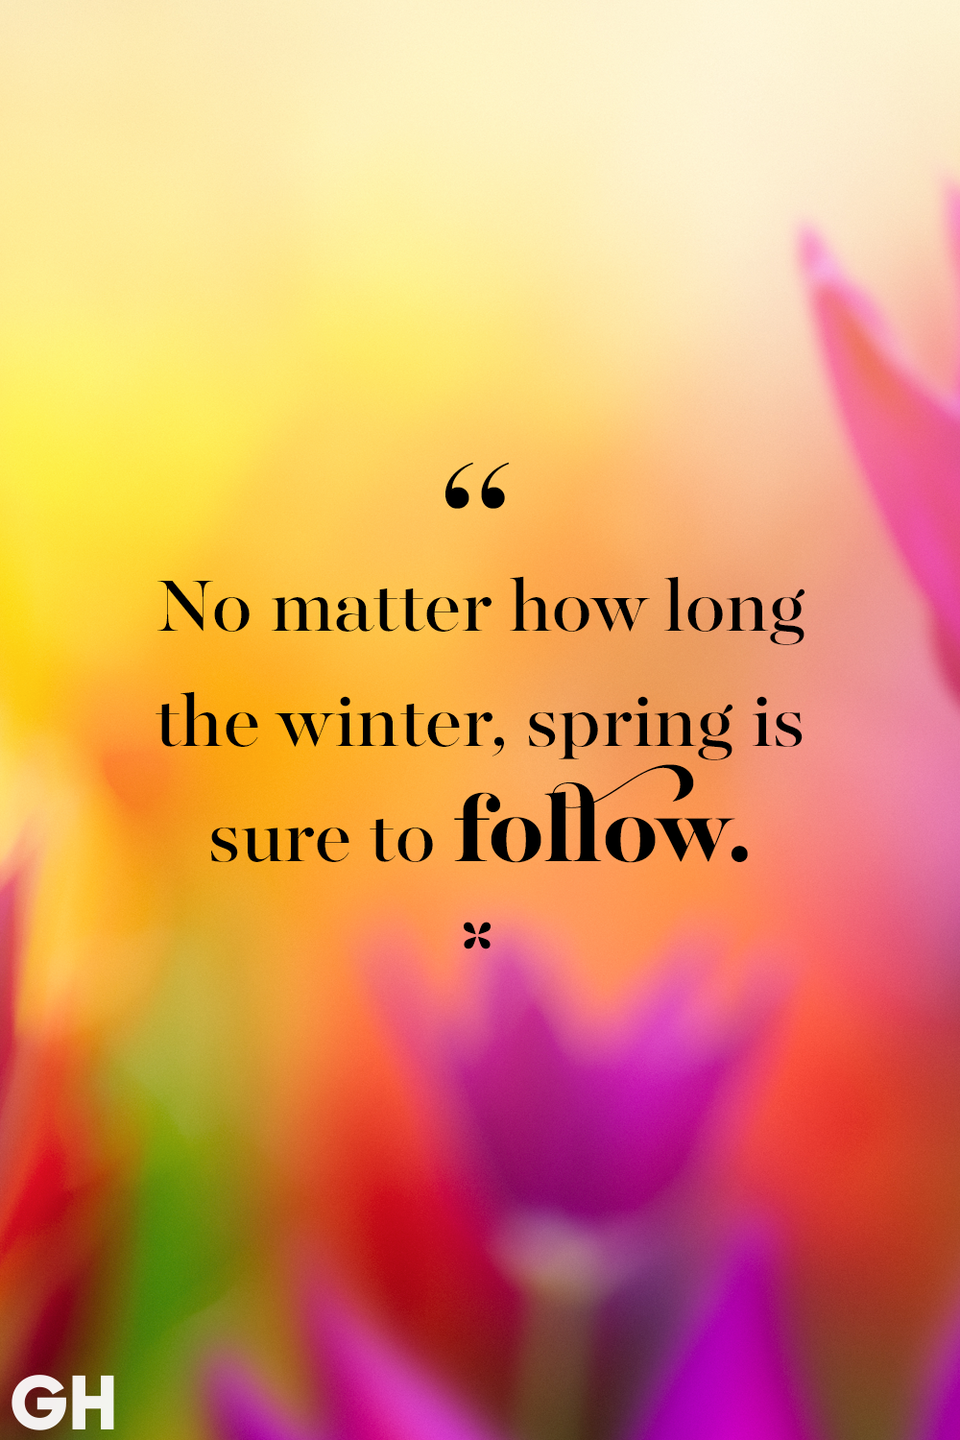 <p>No matter how long the winter, spring is sure to follow.</p>